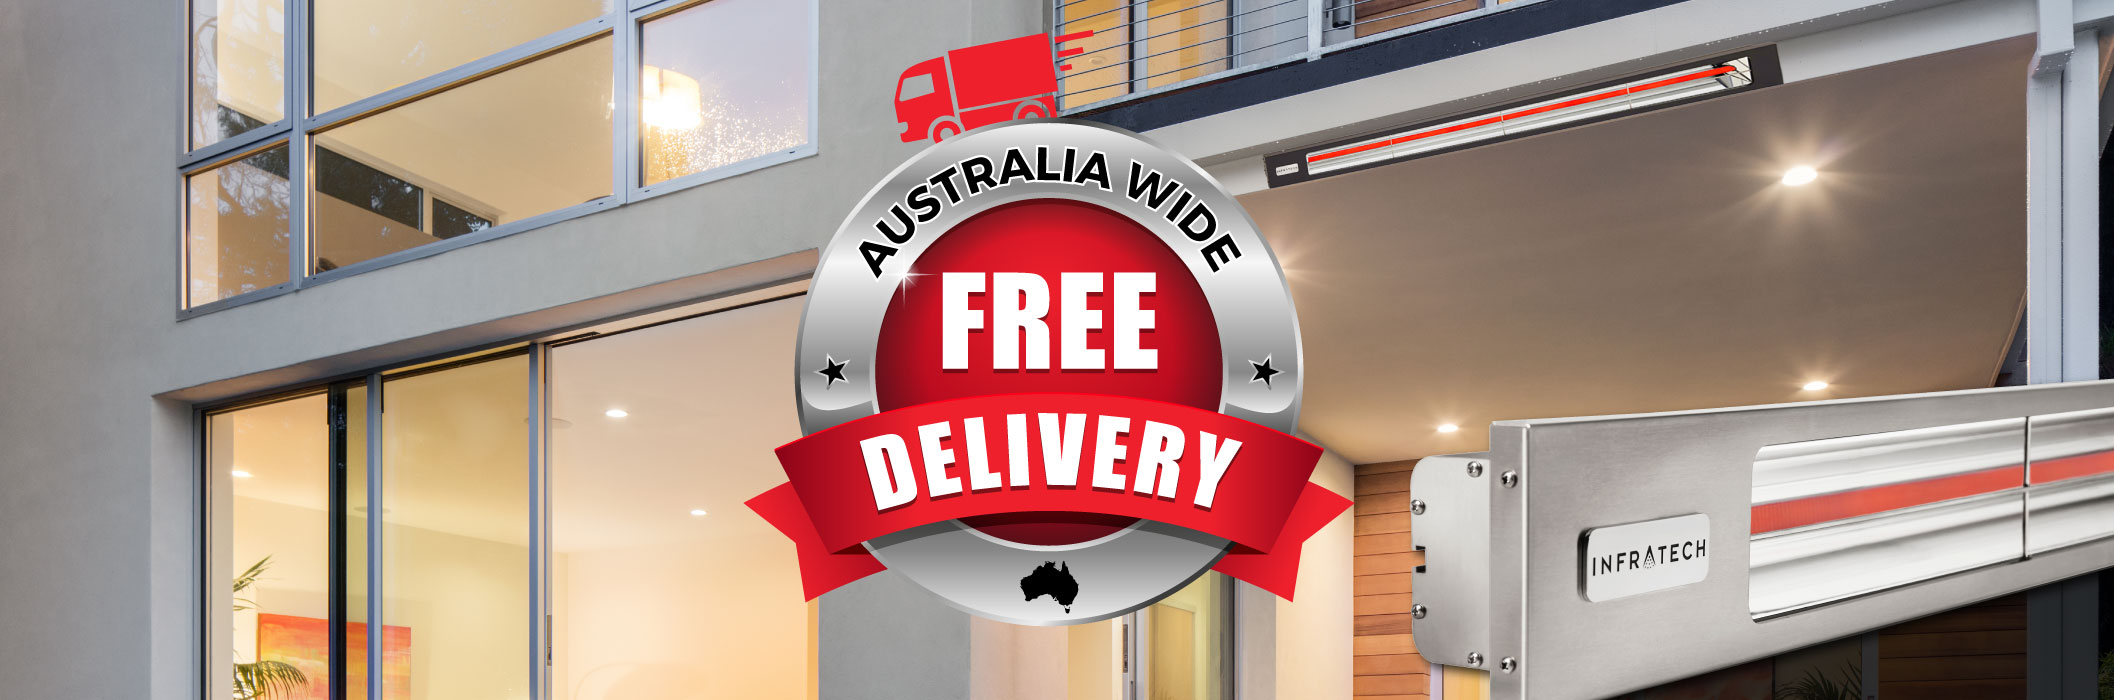 Infratech Heaters - Free Shipping - Aus